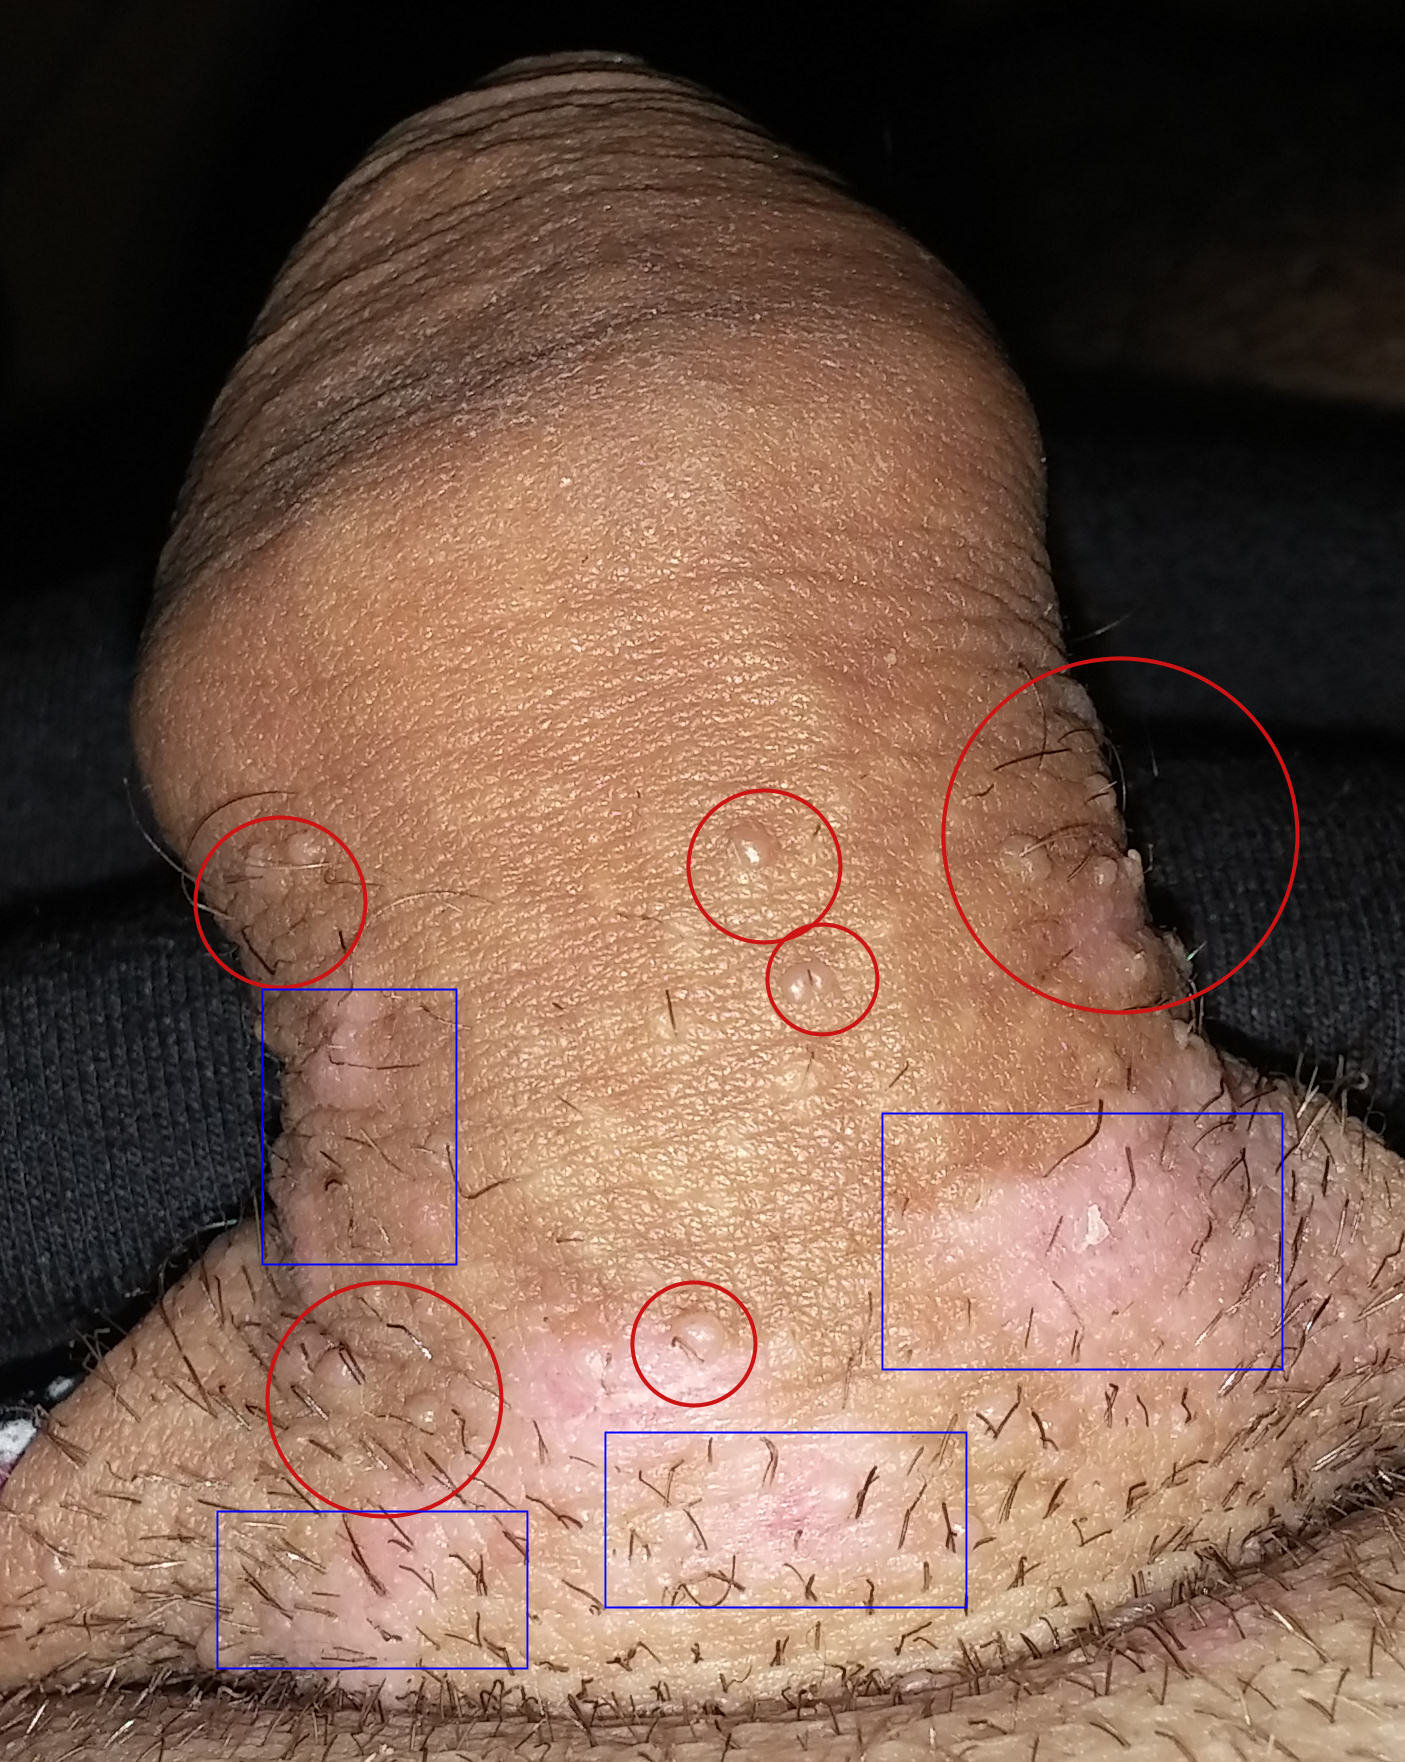 hpv high risk positive and normal pap